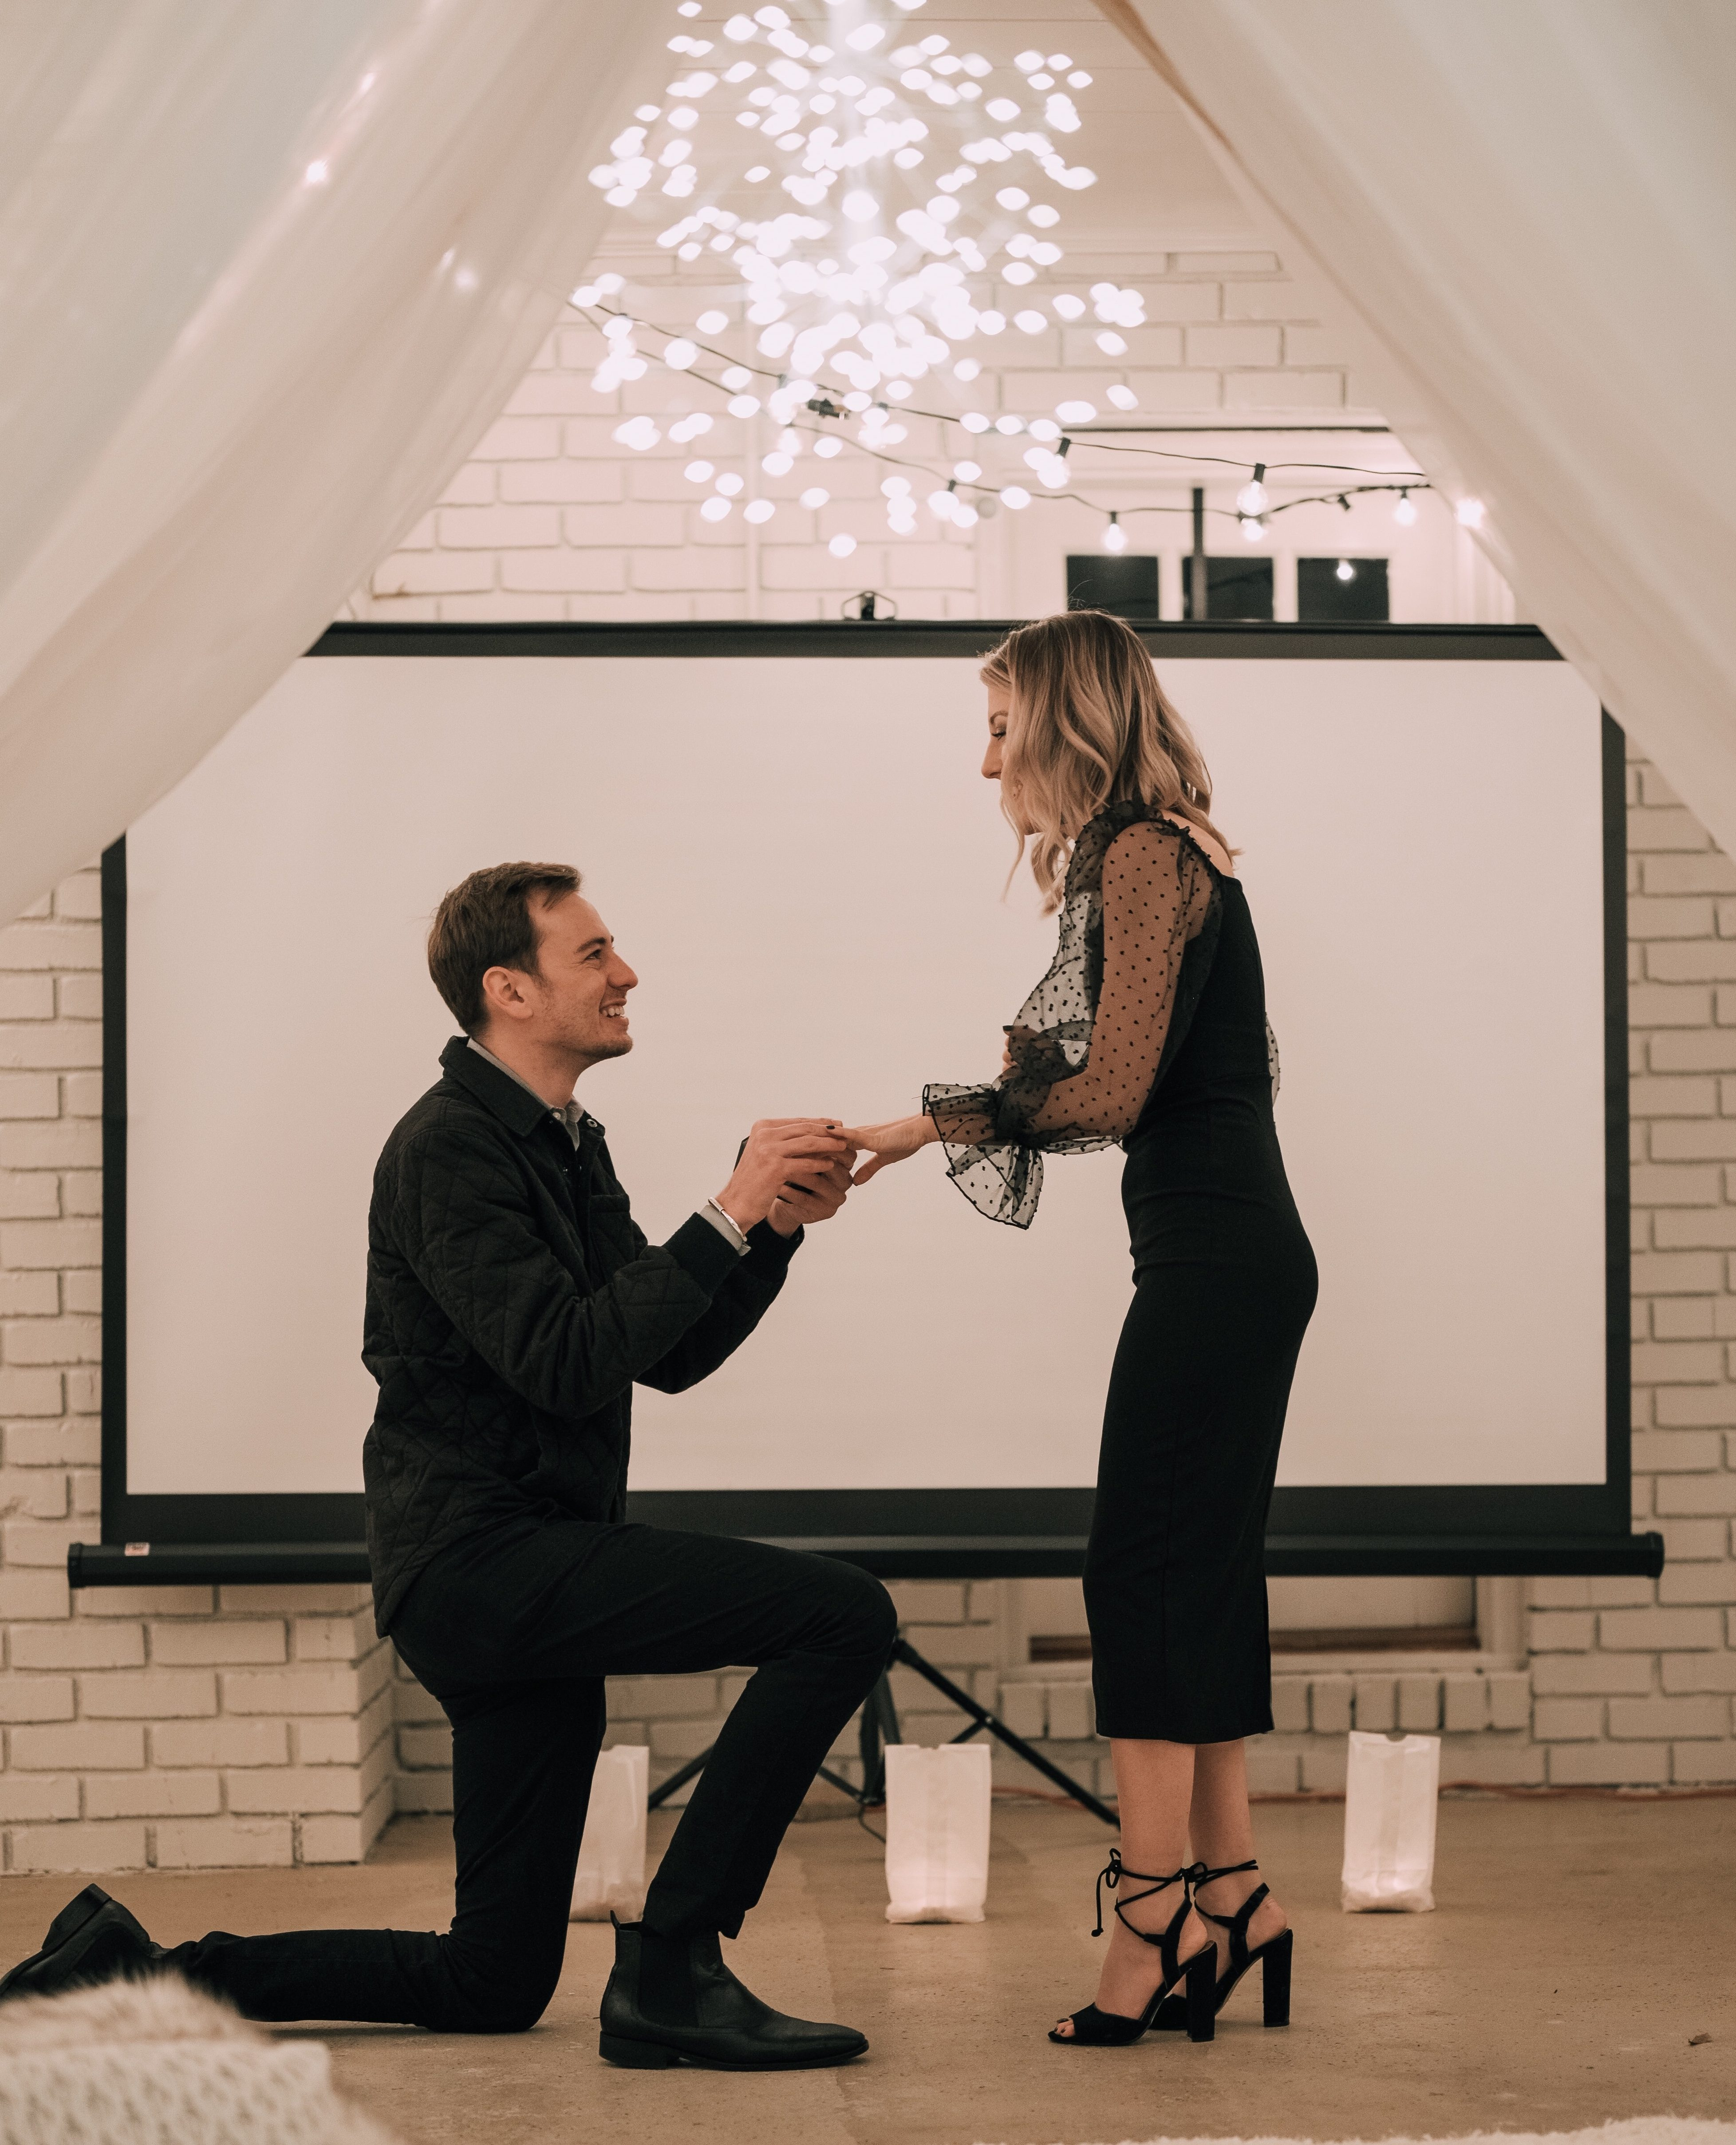 Engagement Proposal Ideas in Georgia